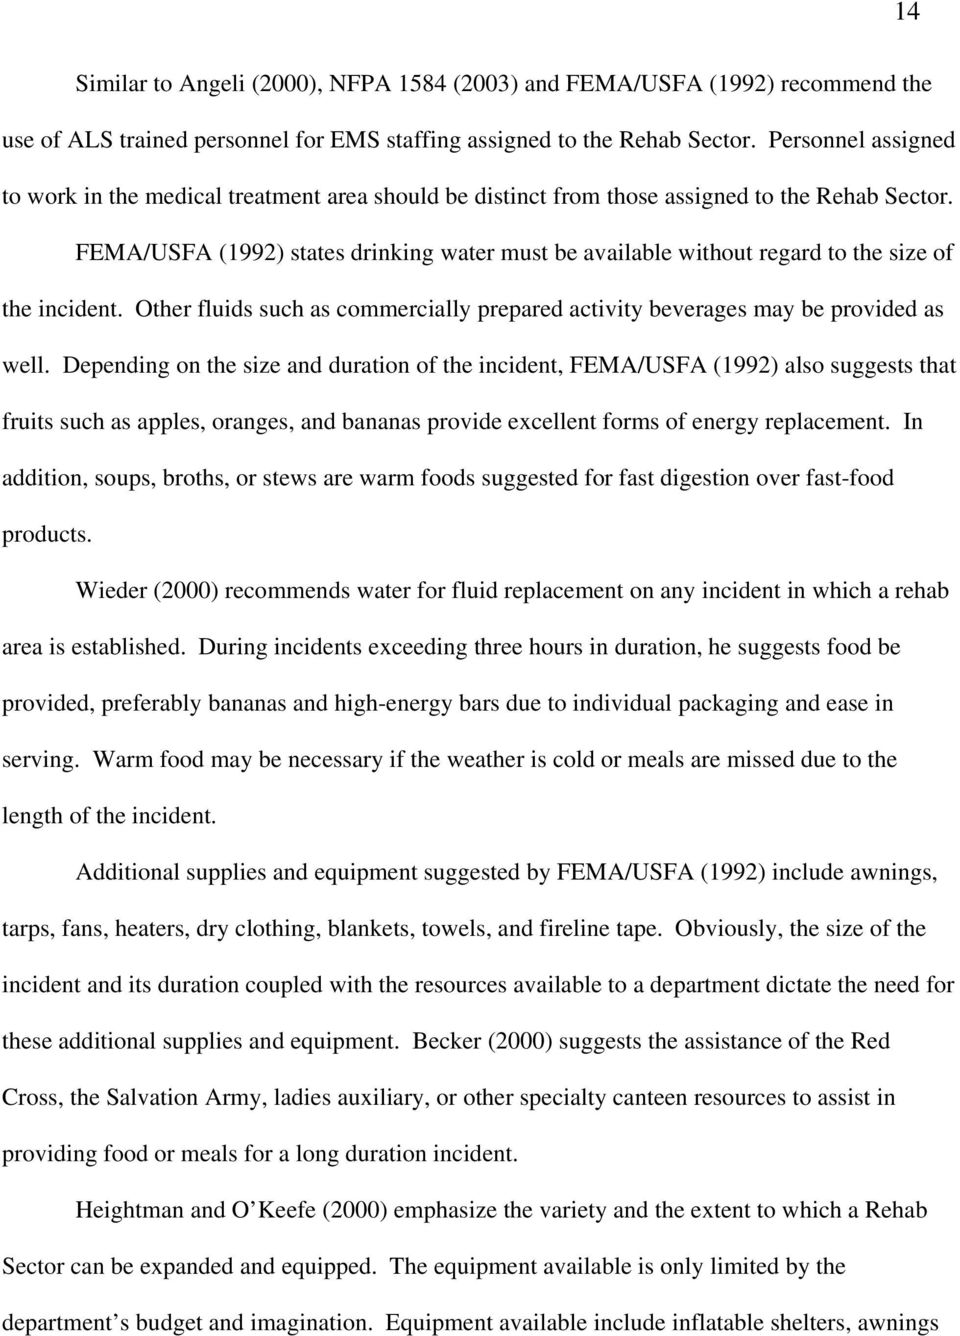 FEMA/USFA (1992) states drinking water must be available without regard to the size of the incident. Other fluids such as commercially prepared activity beverages may be provided as well.